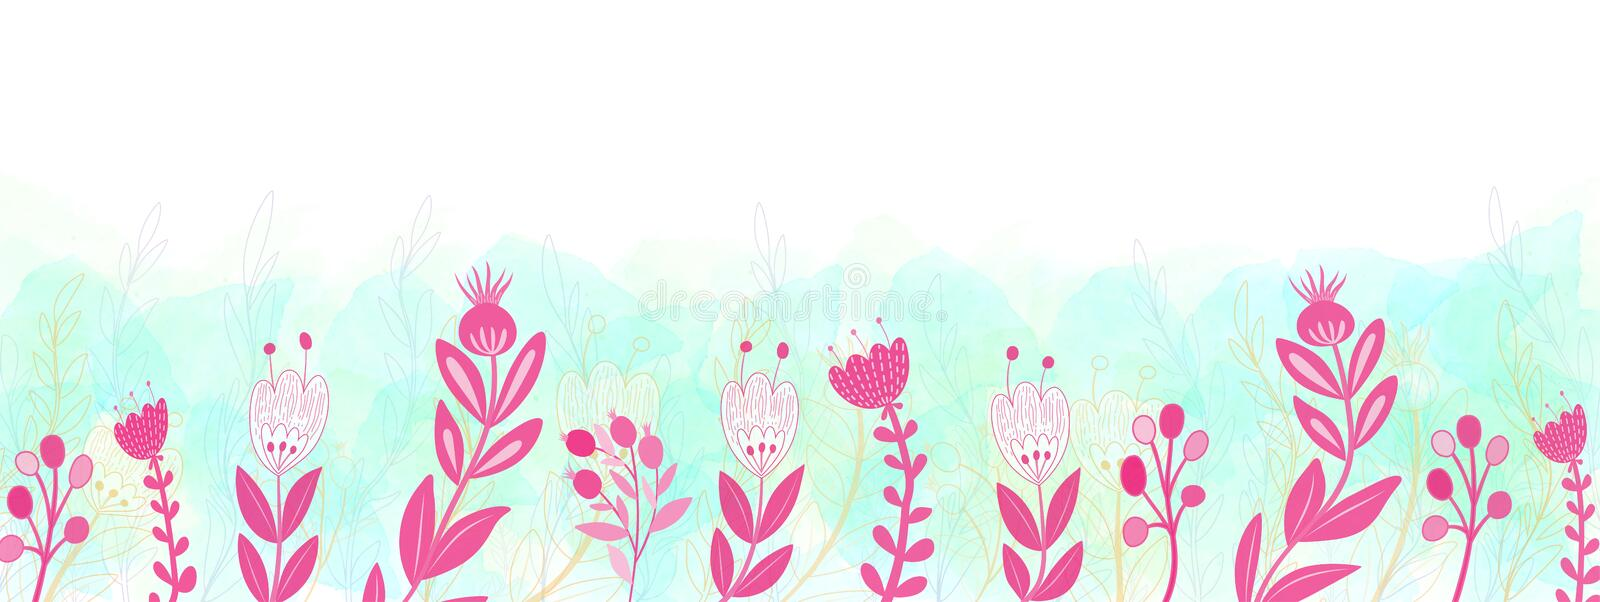 Hand Drawn Pink Floral Border with Green and Blue Watercolor Background Banner vector illustration